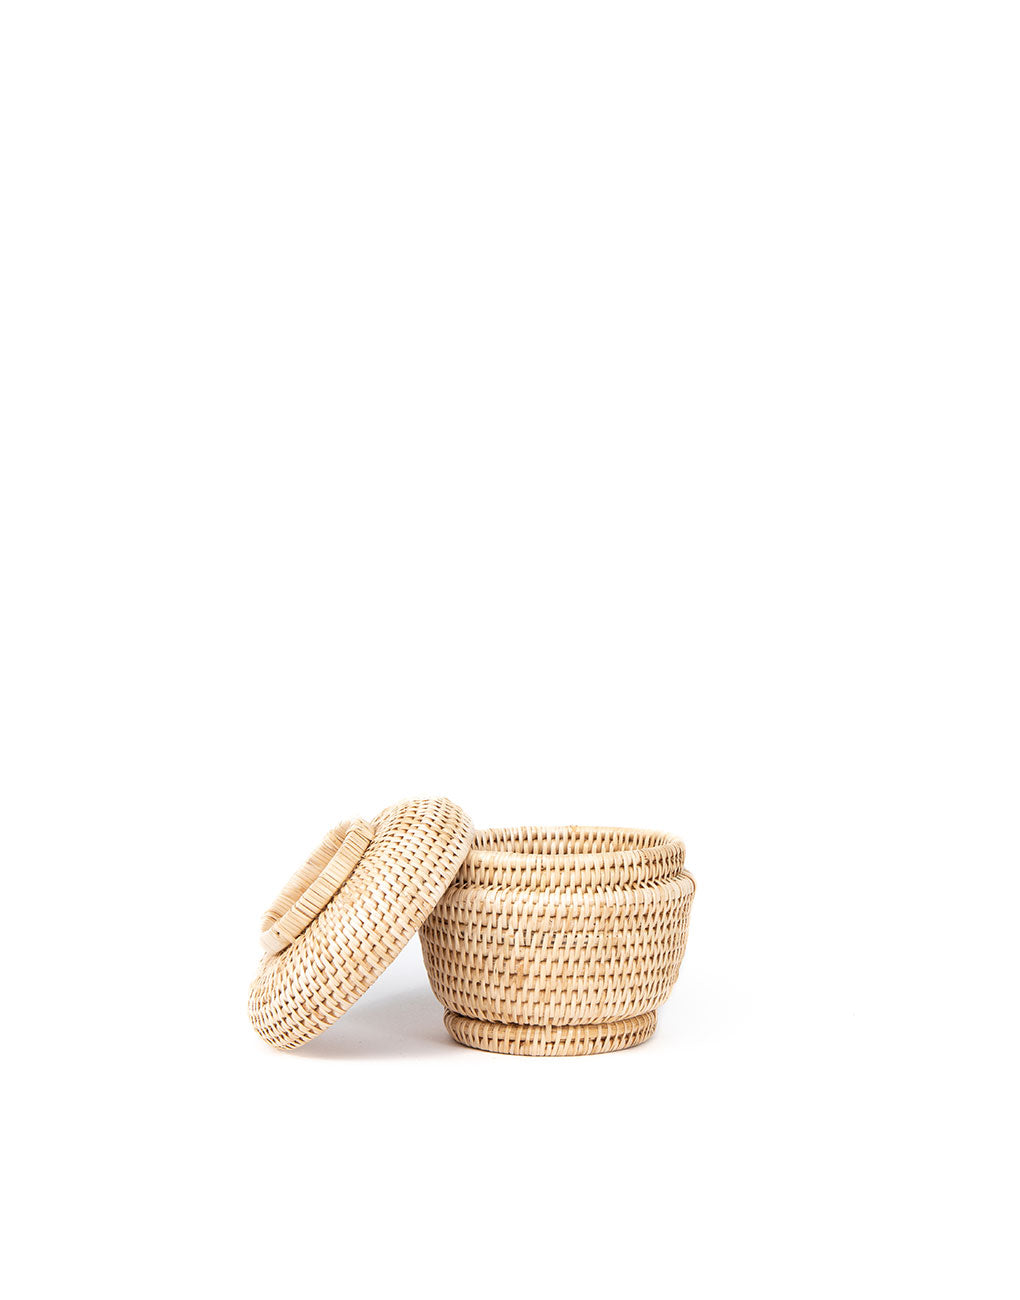 Rattan Lidded Basket - Natural